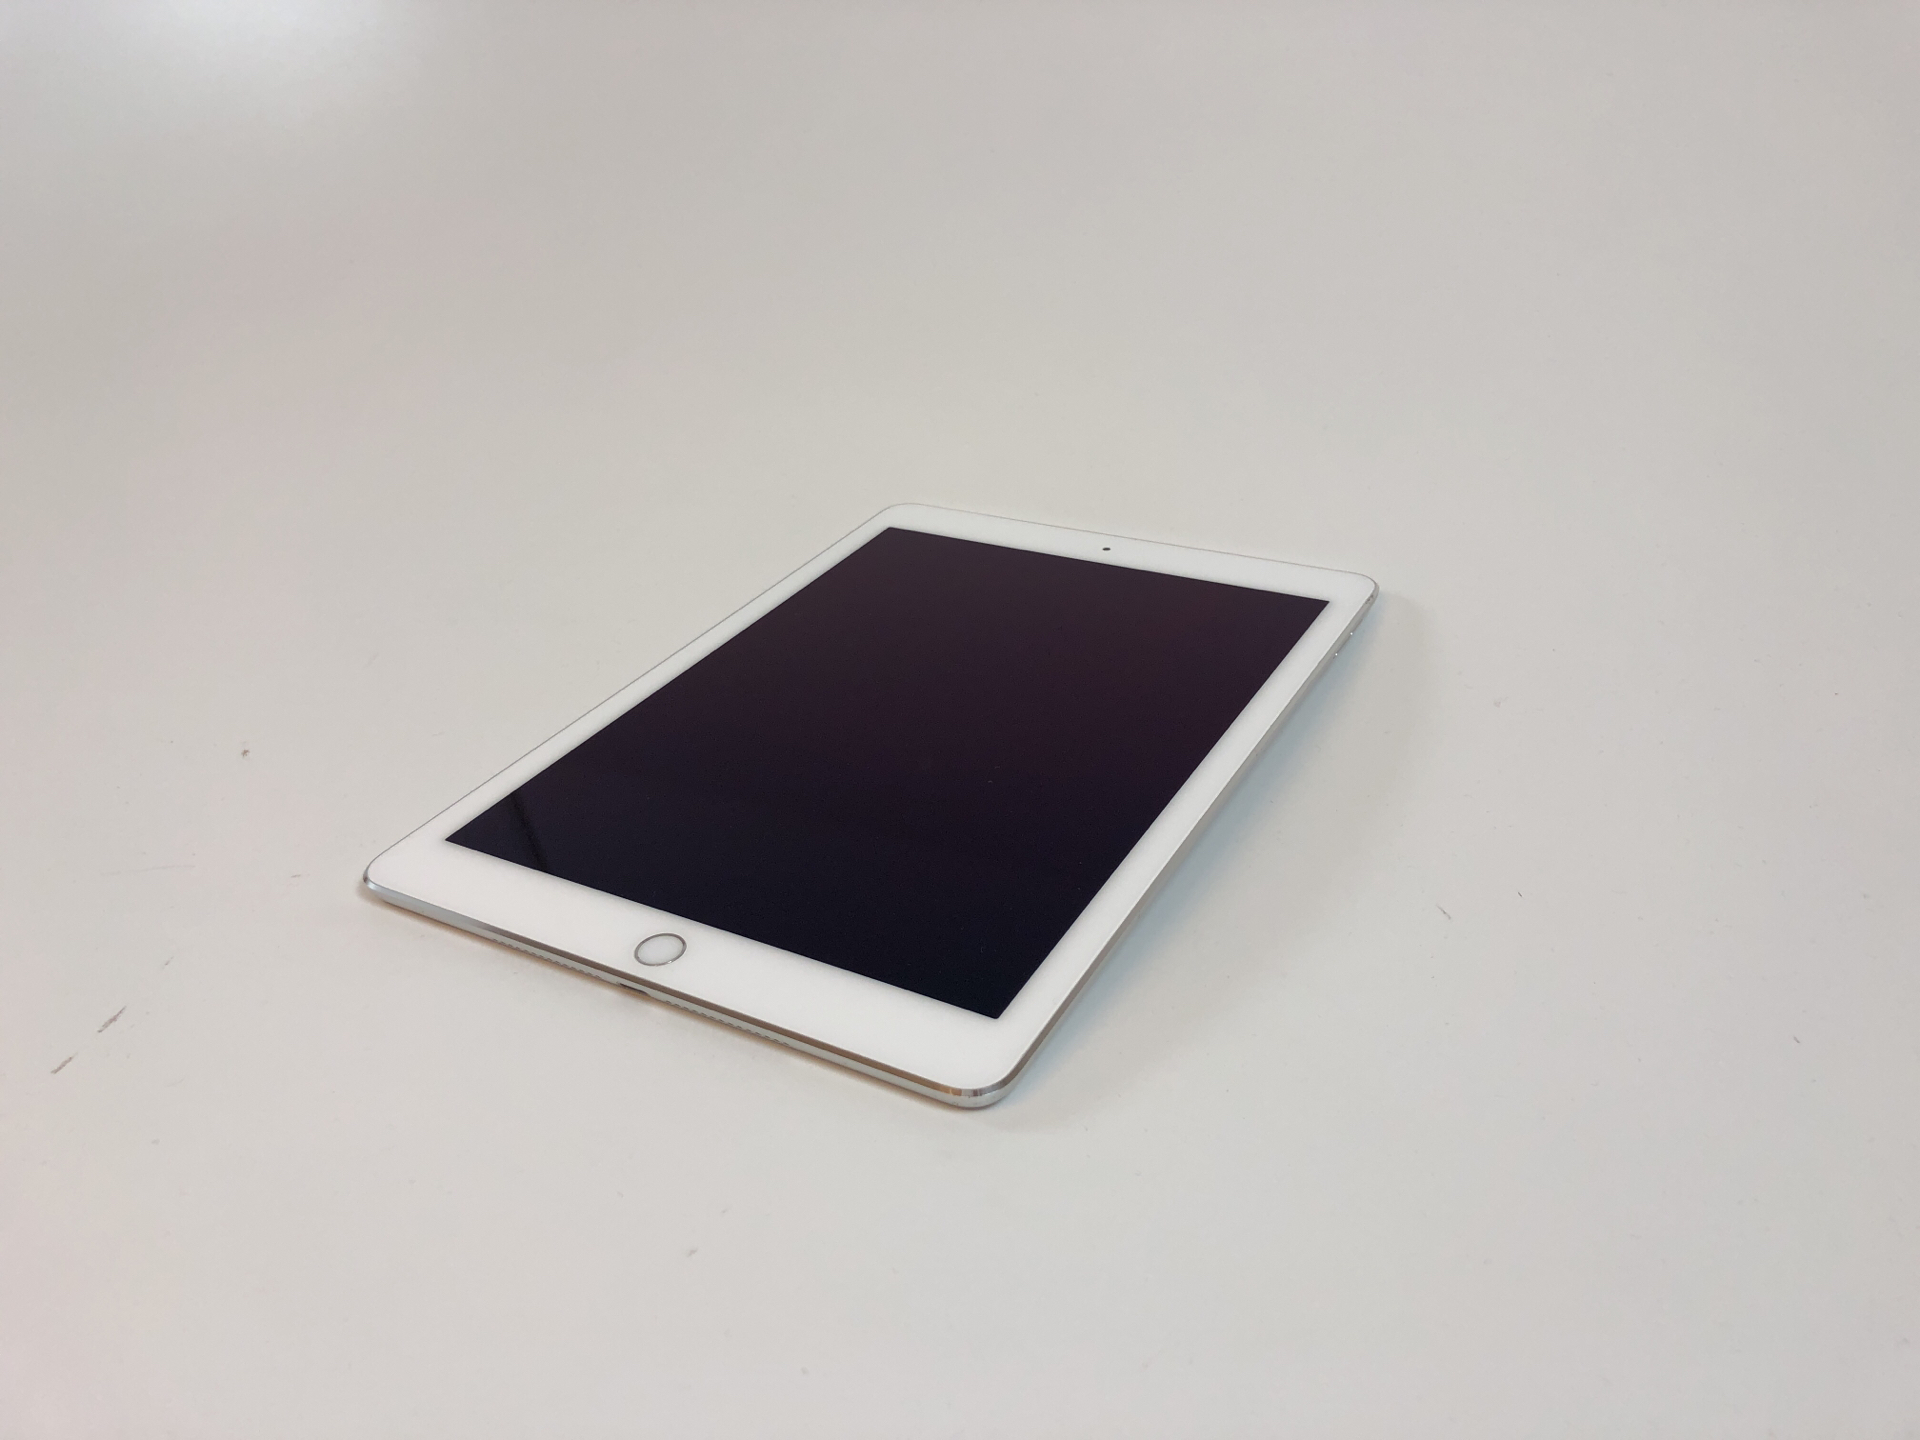 iPad Air 2 Wi-Fi 16GB, 16GB, Silver, image 2